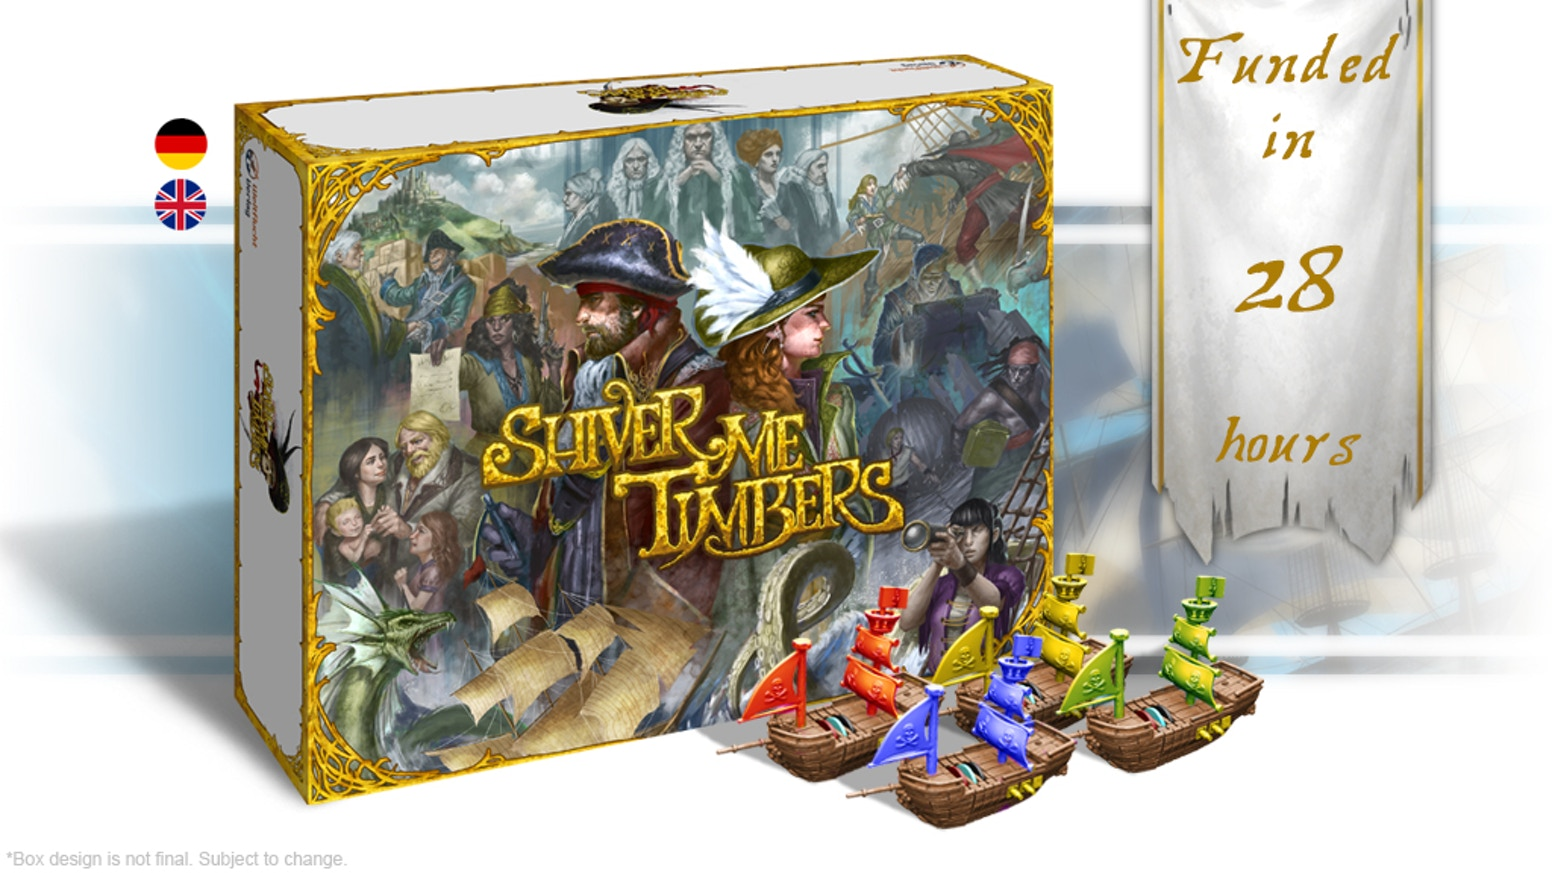 A Strategic Pirate Sandbox Game with Modular Miniatures